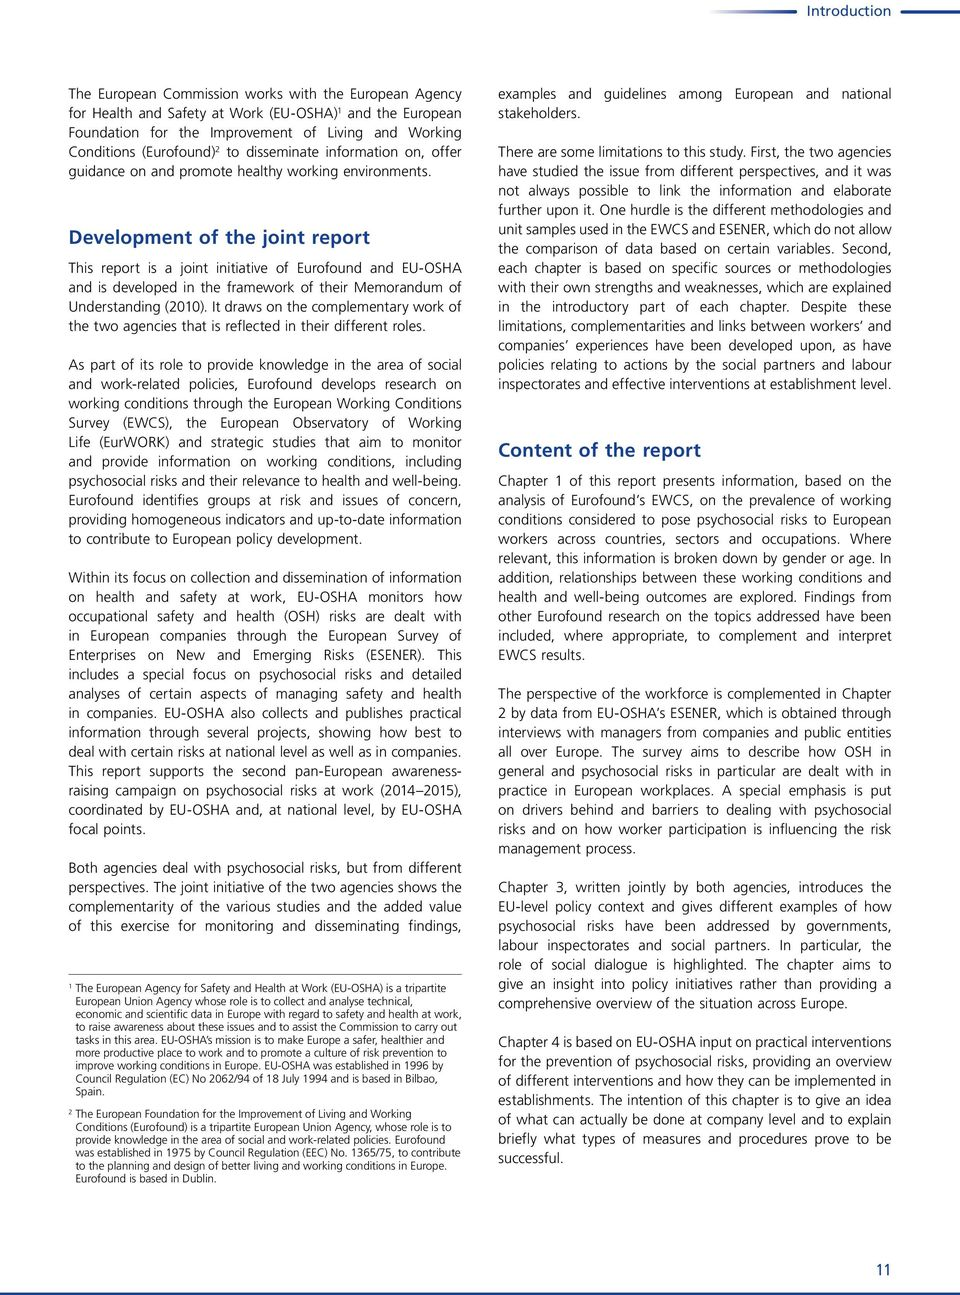 Development of the joint report This report is a joint initiative of Eurofound and EU-OSHA and is developed in the framework of their Memorandum of Understanding (2010).